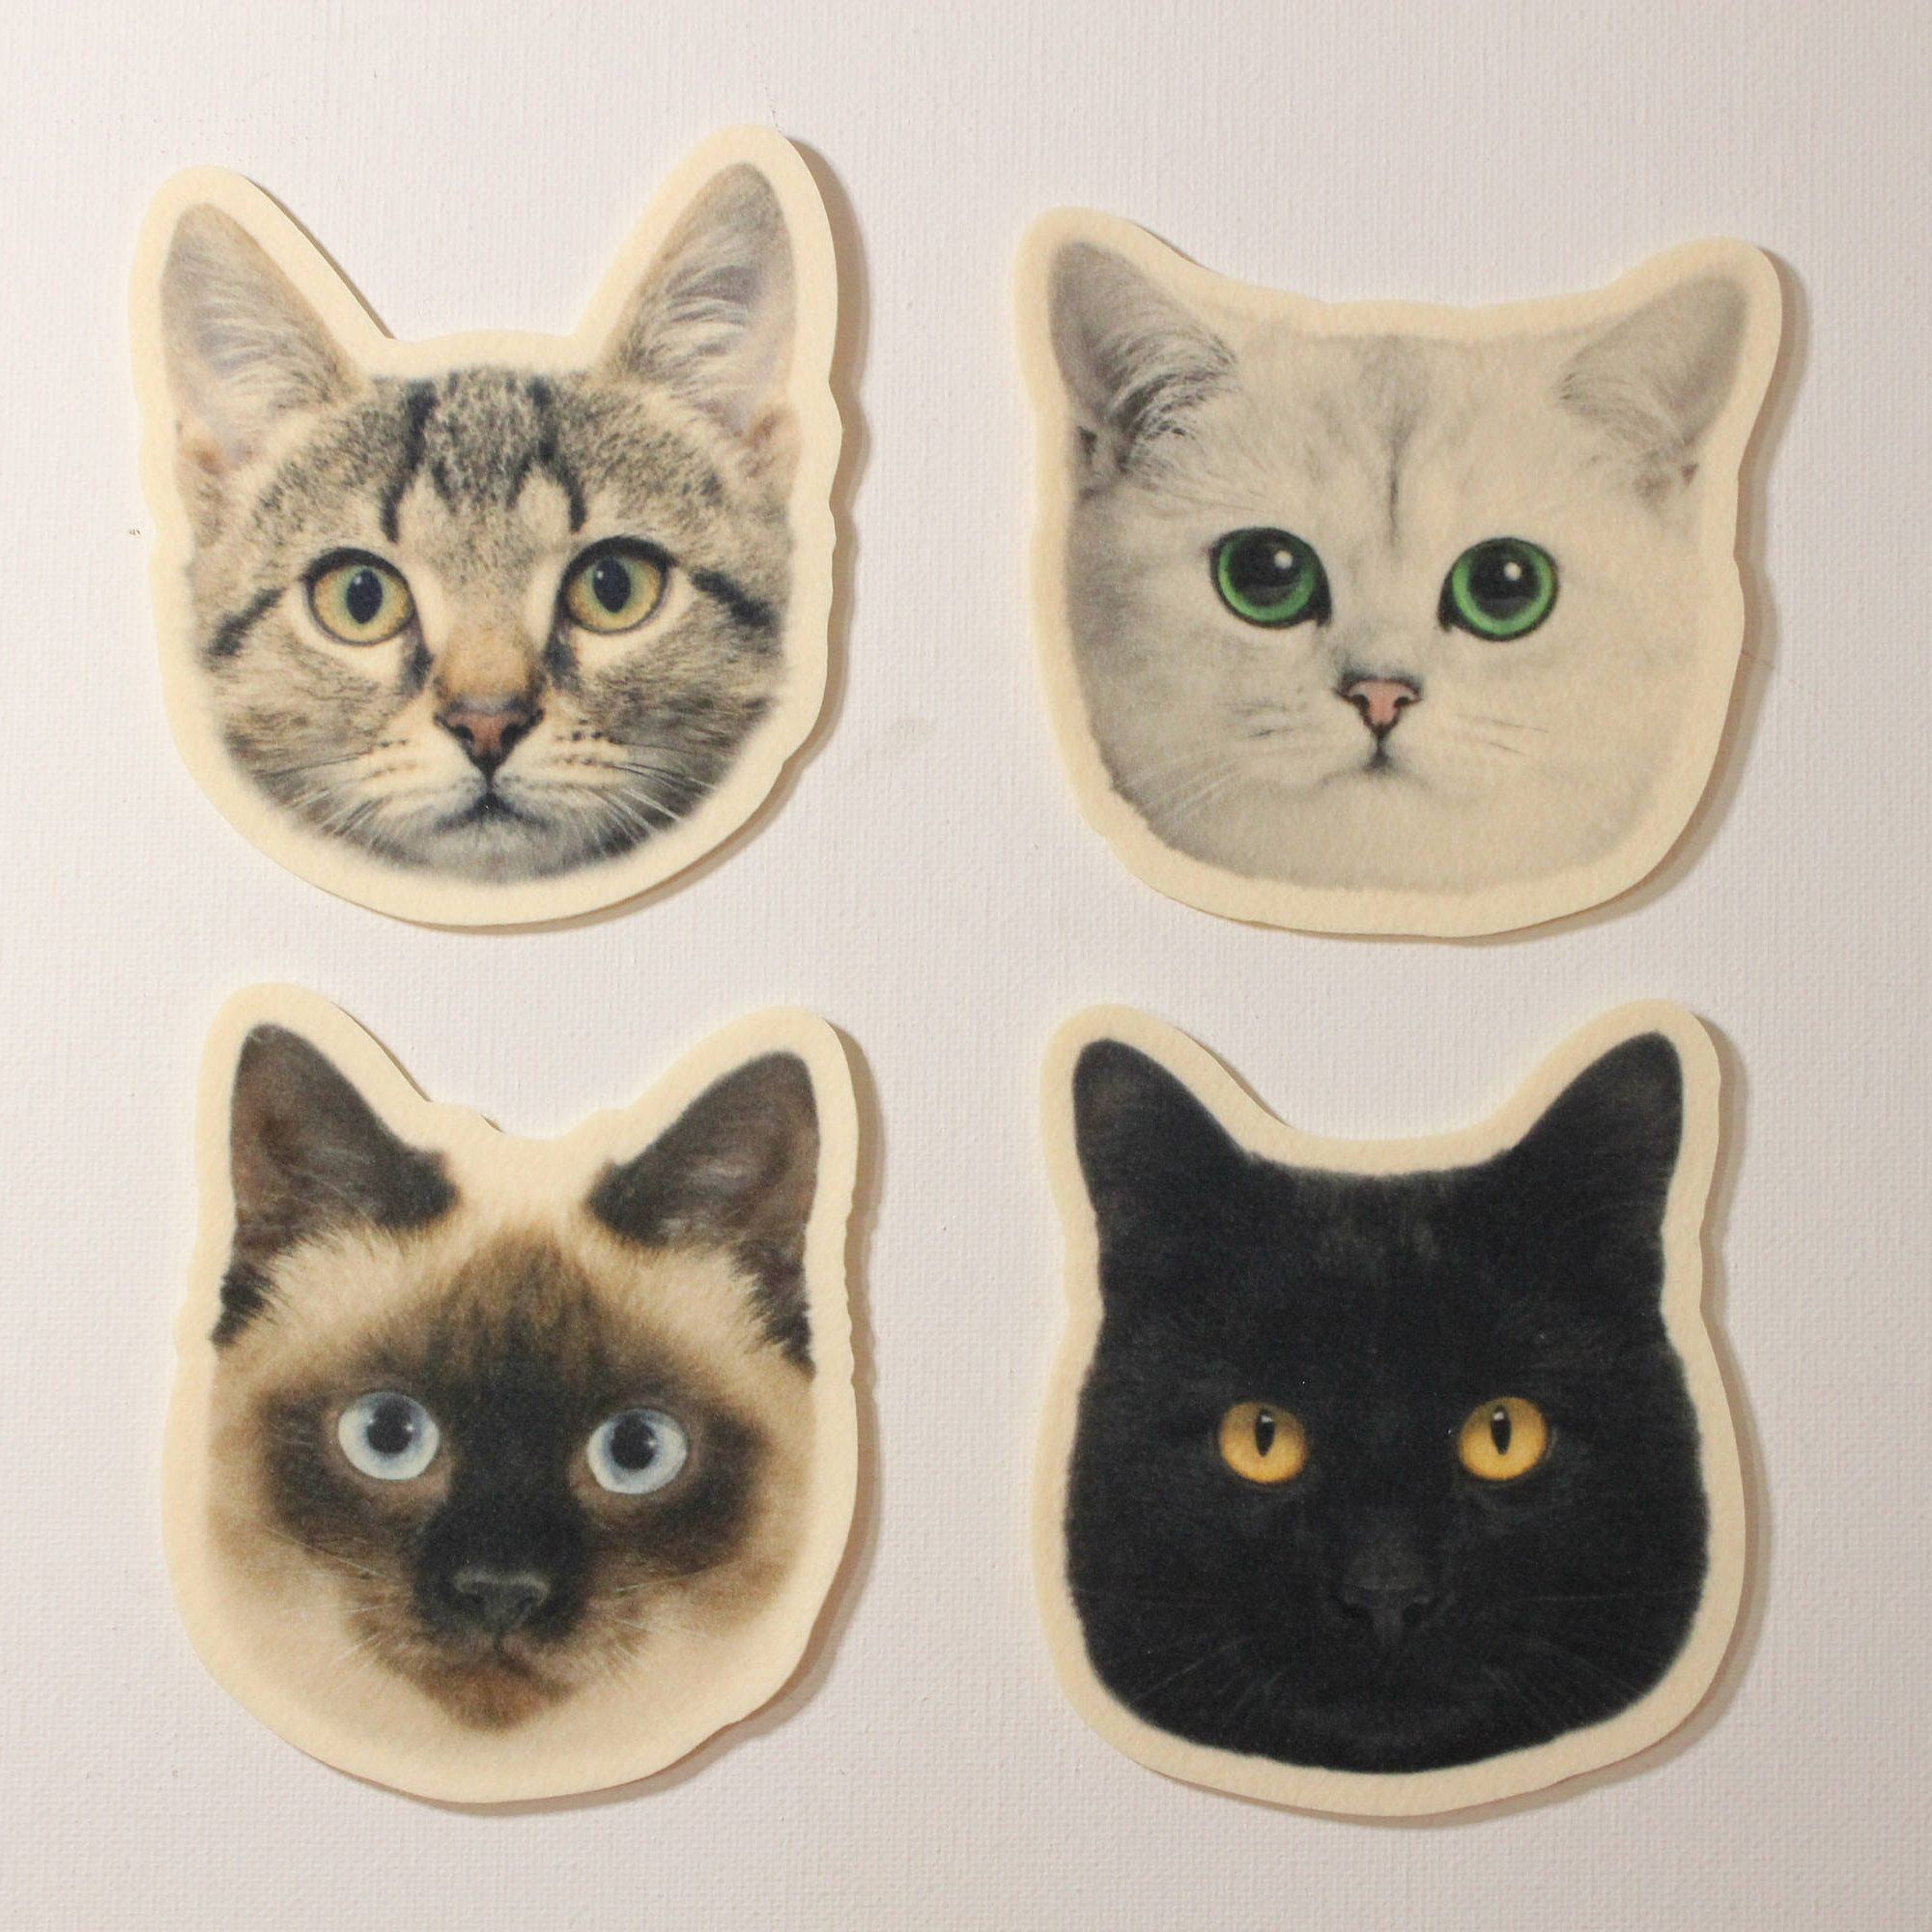 Kawaii Cat Face Drink Cup/Glass Coasters American Short